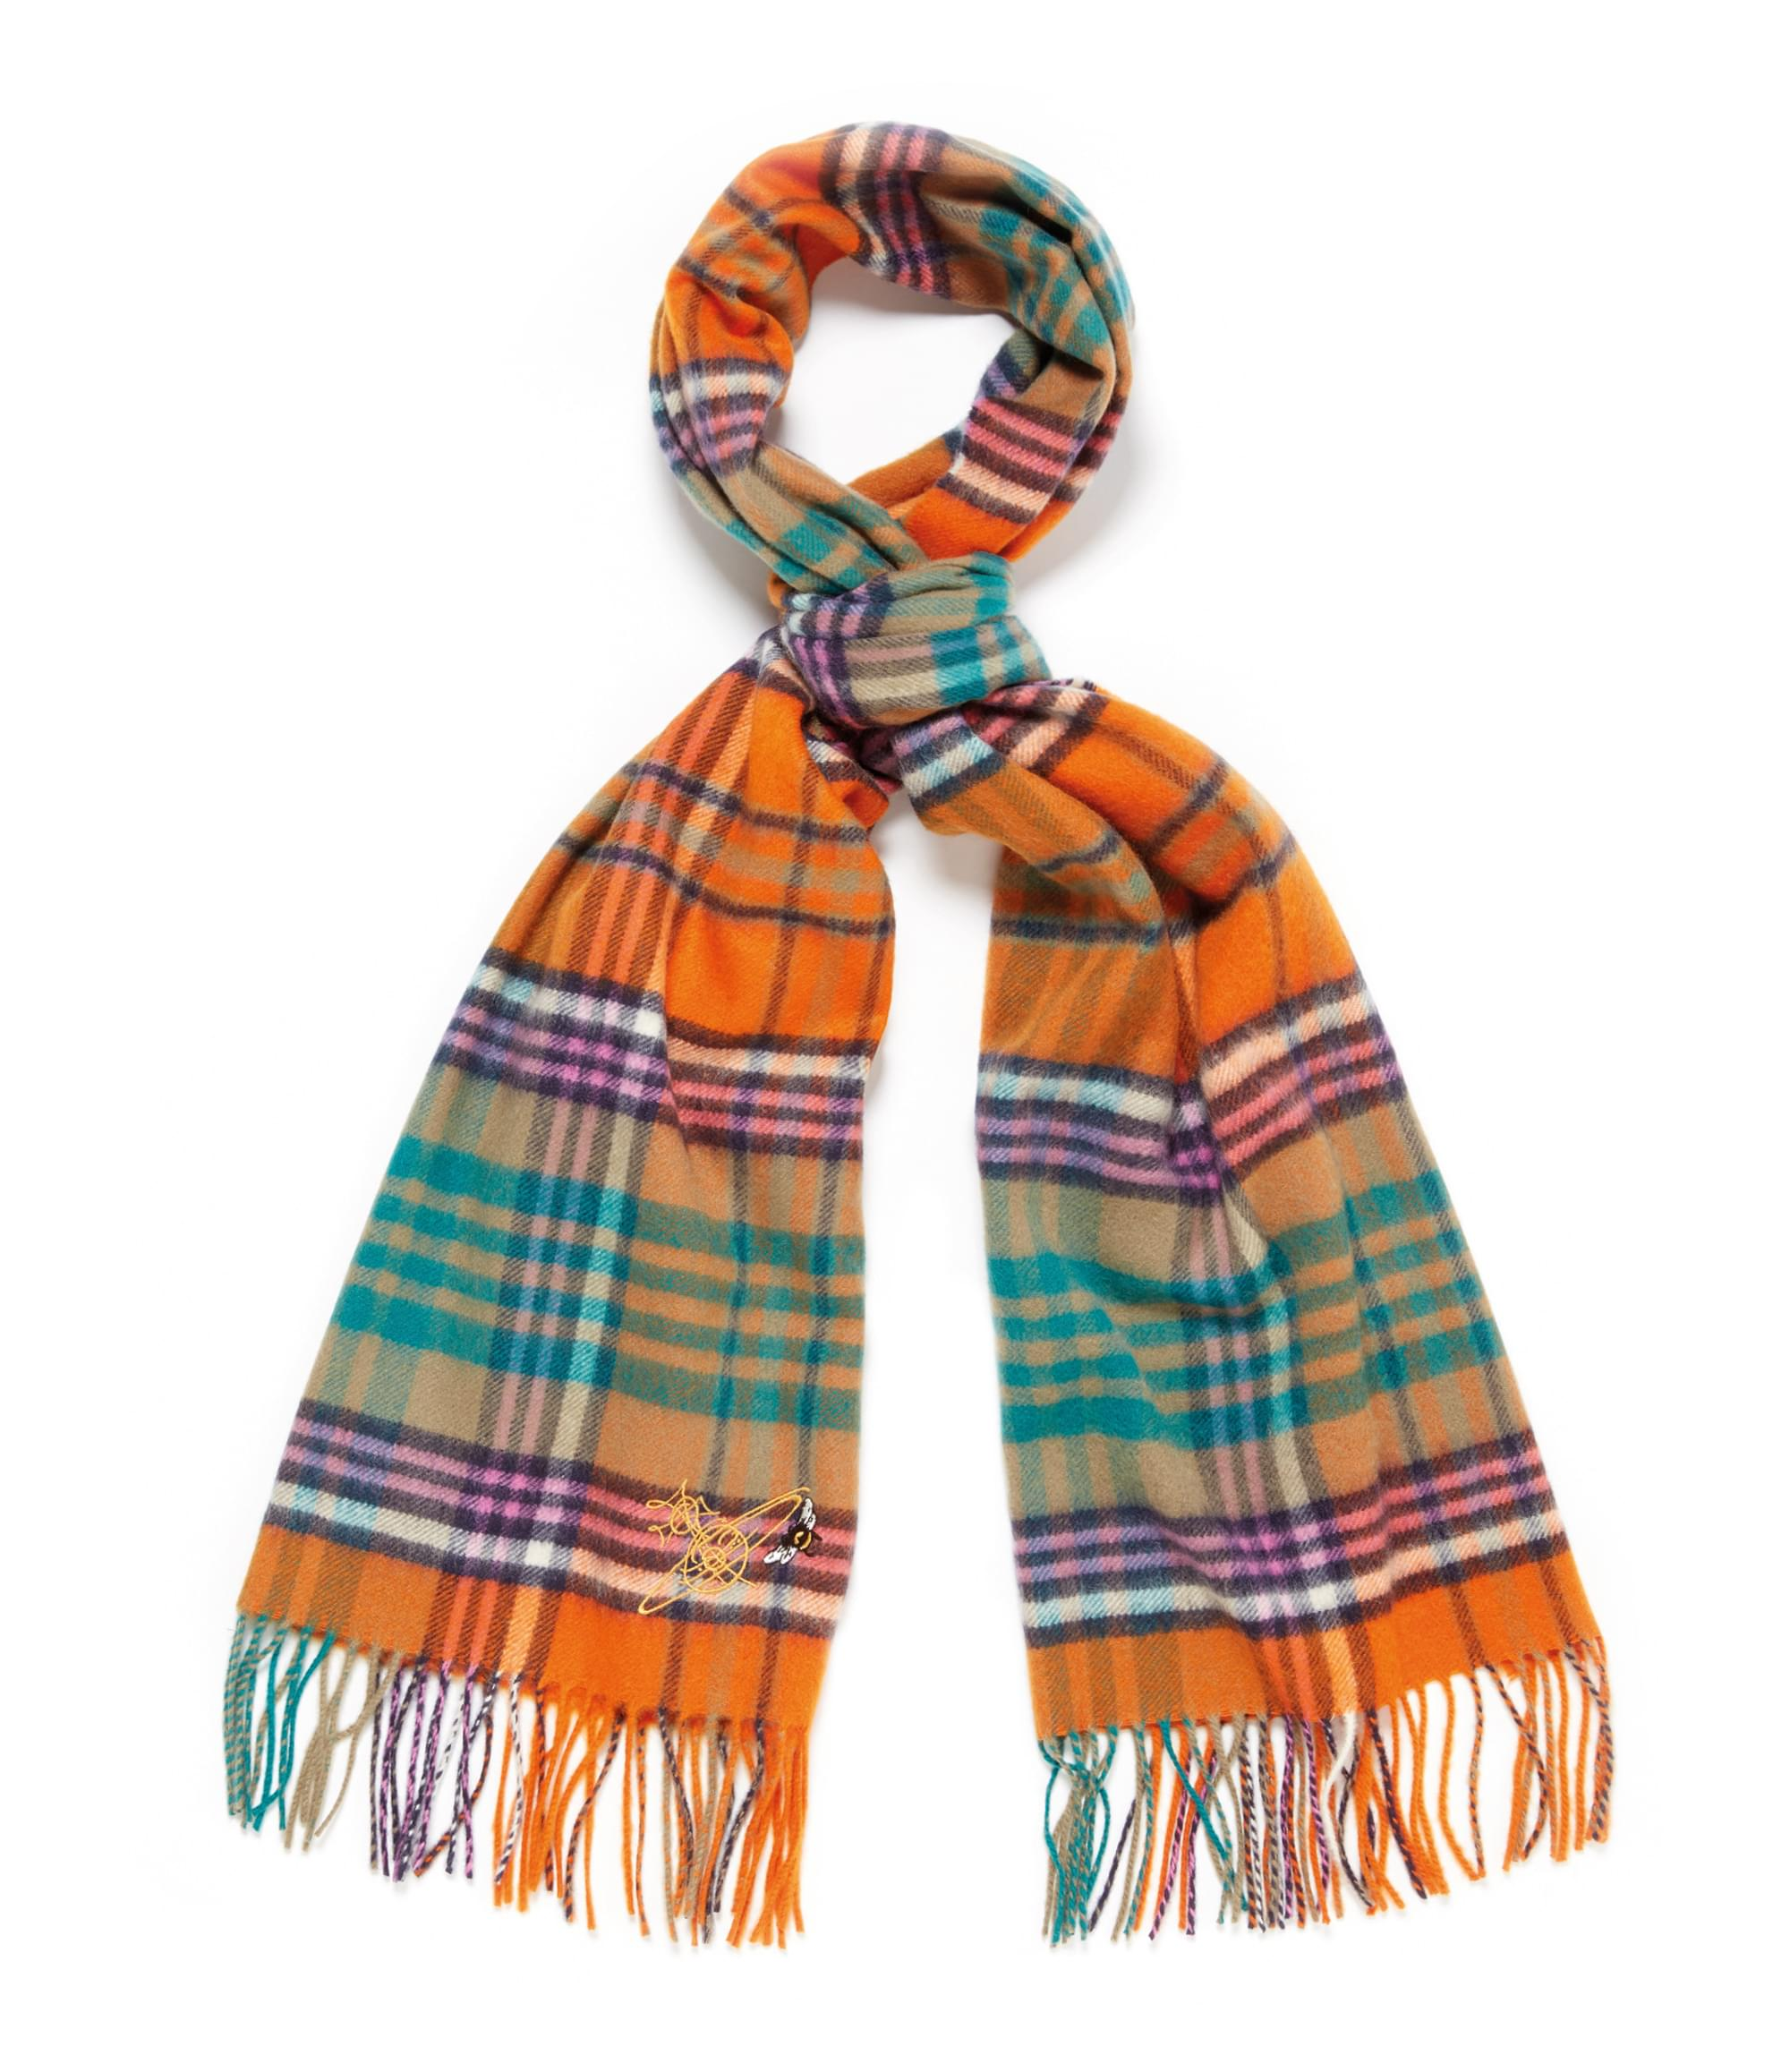 Vivienne Westwood Johnstons of Elgin Wide Orange Tartan Scarf